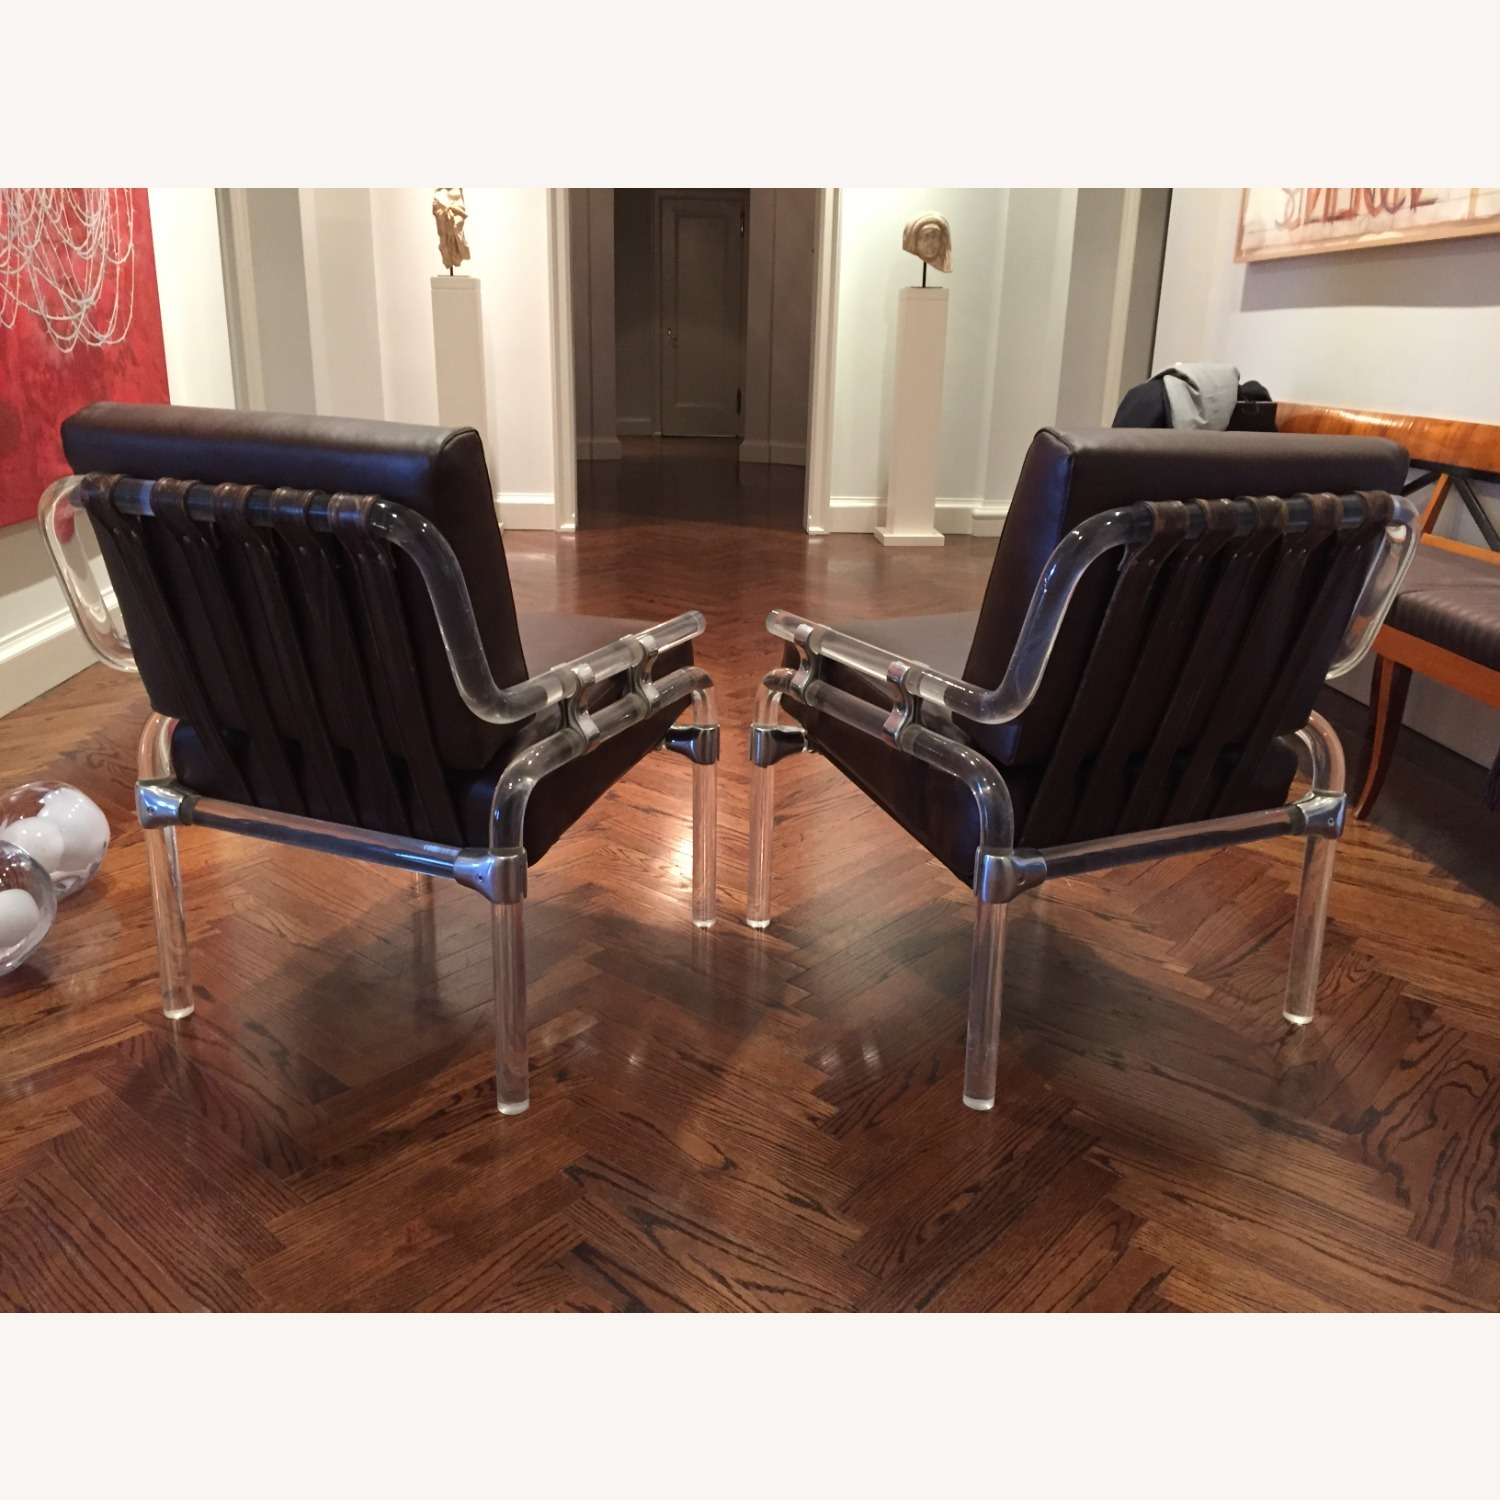 Pair of Pink Leather Jeff Messerschmidt Chairs - image-2